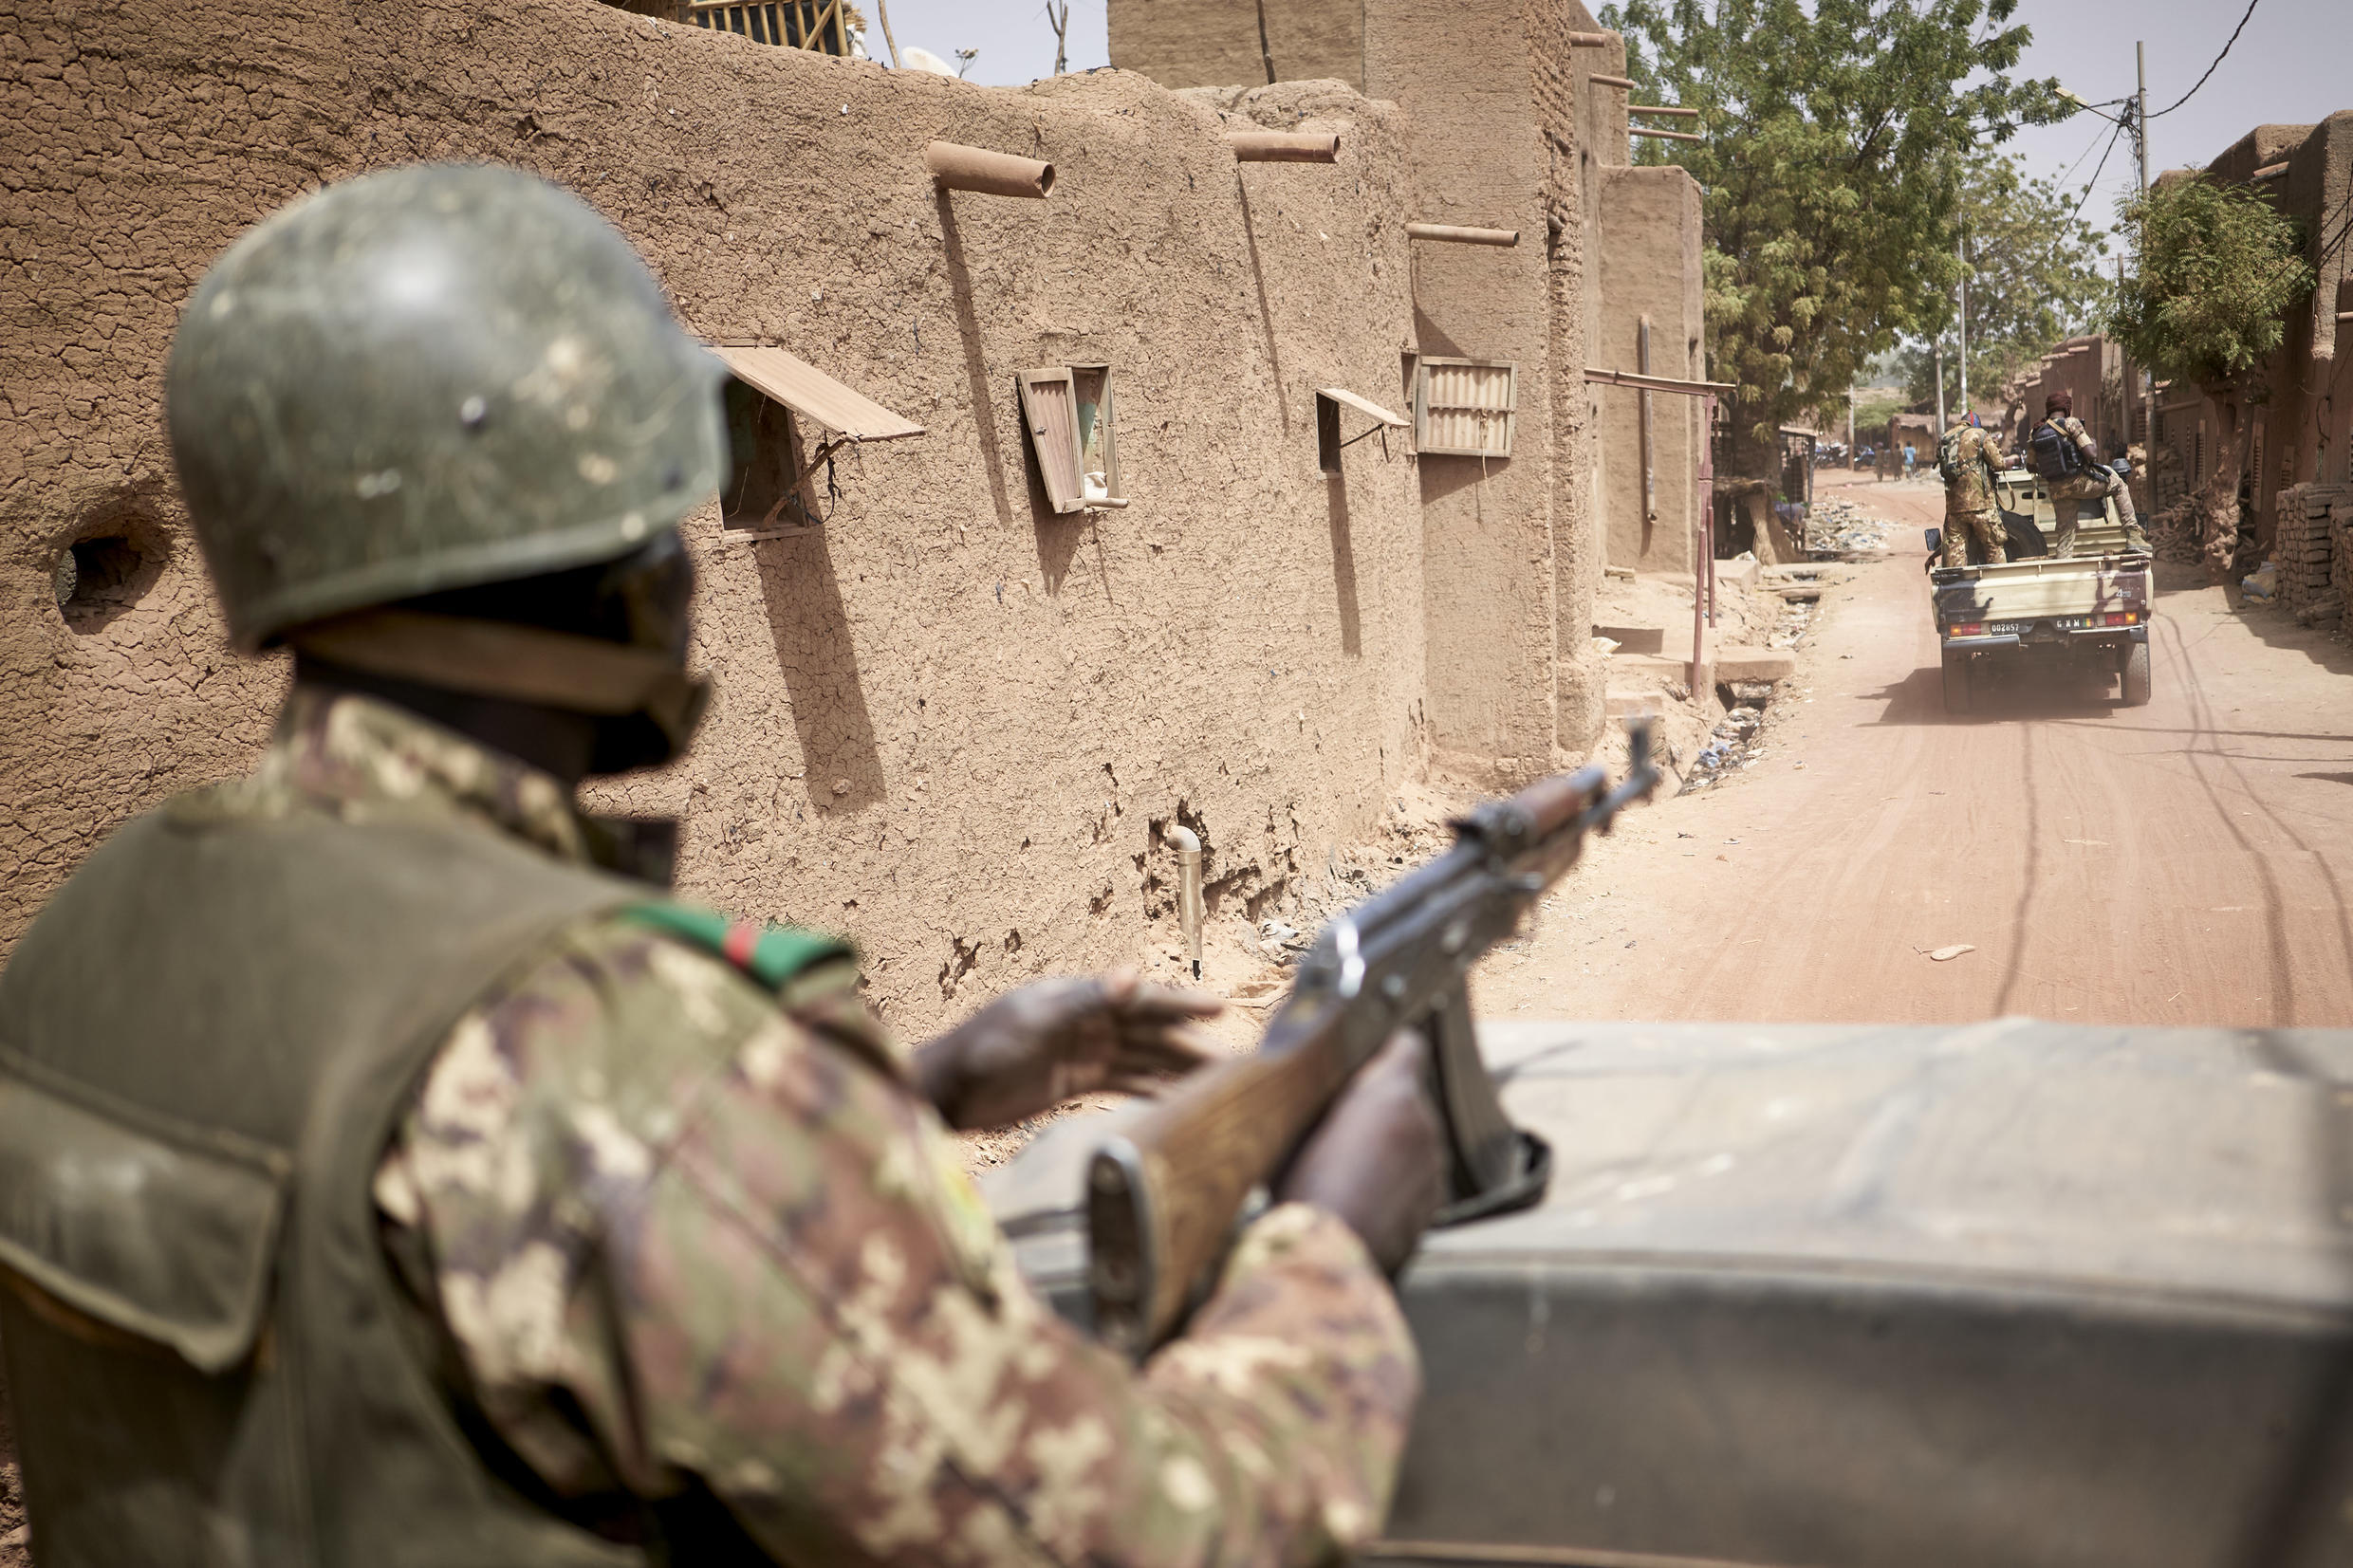 The Malian army has struggled to contain the violence involving jihadists and different ethnic groups.